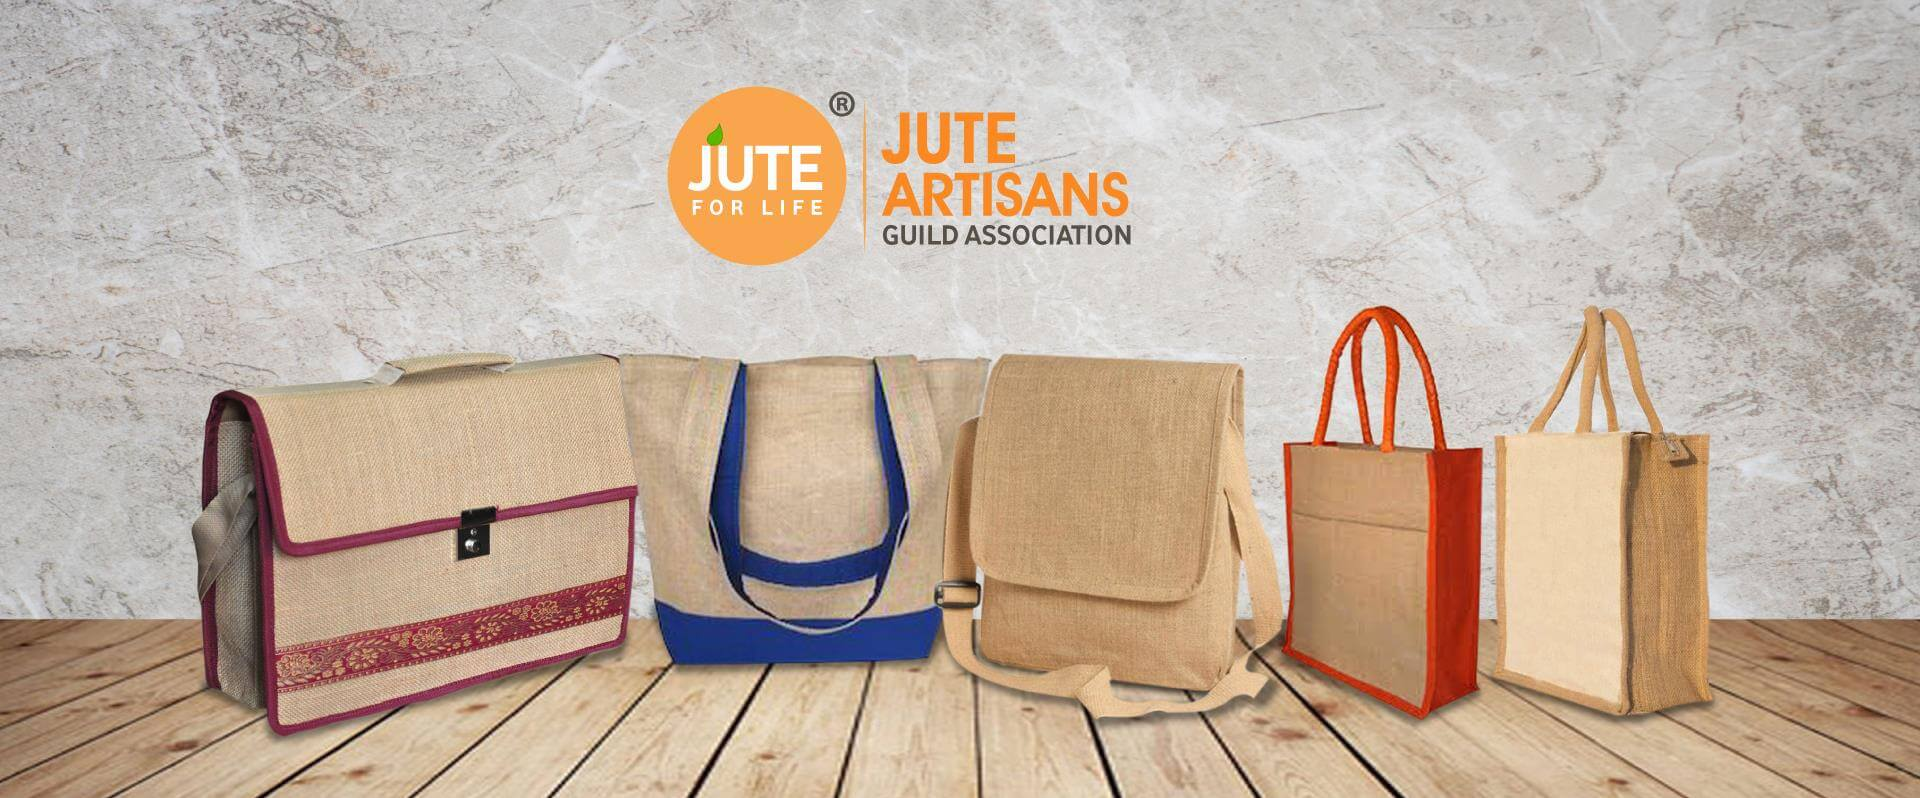 Jute Artisans Guild Association